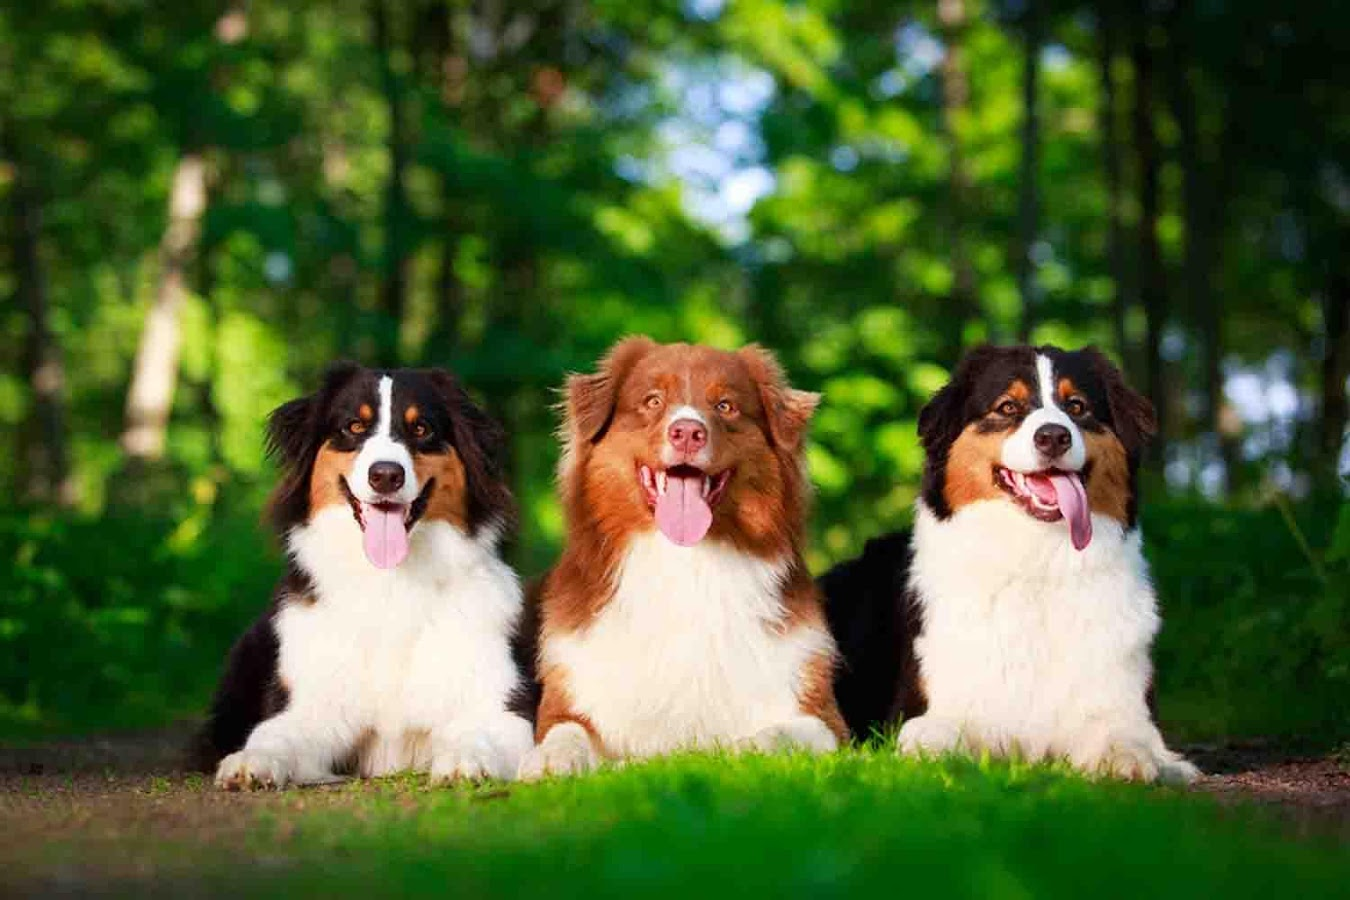 Australian Shepherd Wallpapers   Android Apps on Google Play 1350x900